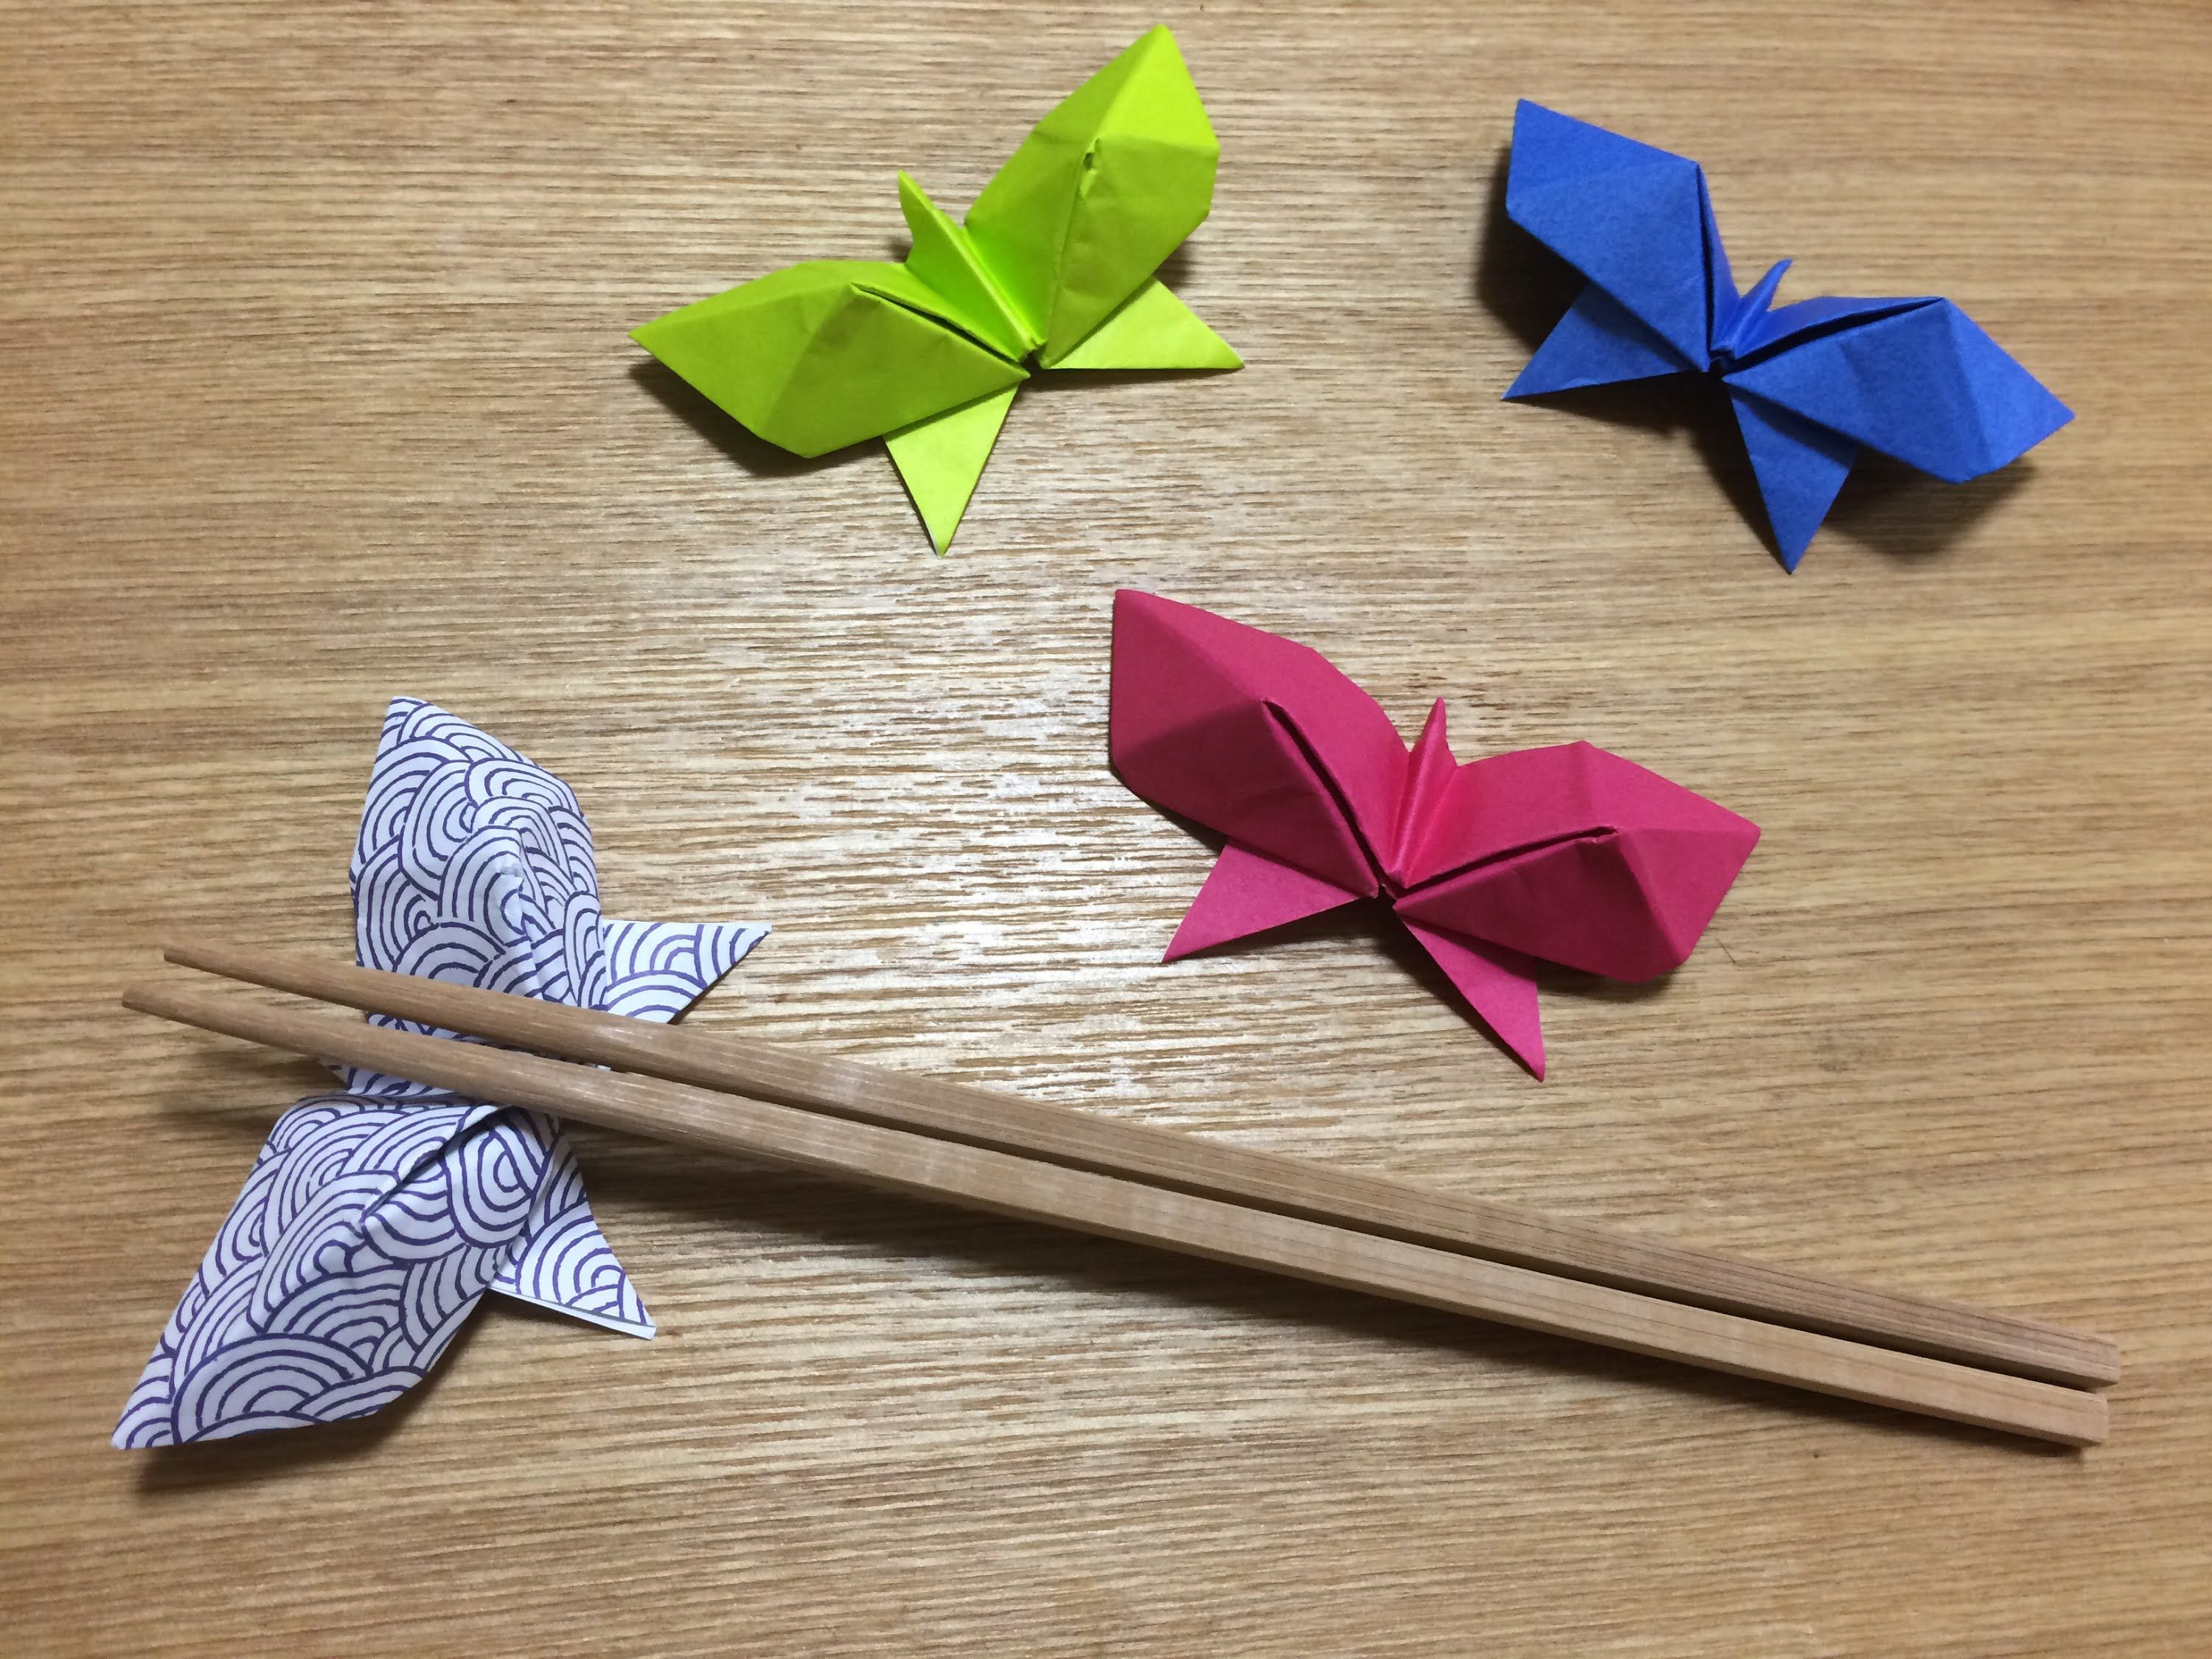 Origami Chopstick Rest Of Butterfly Origami